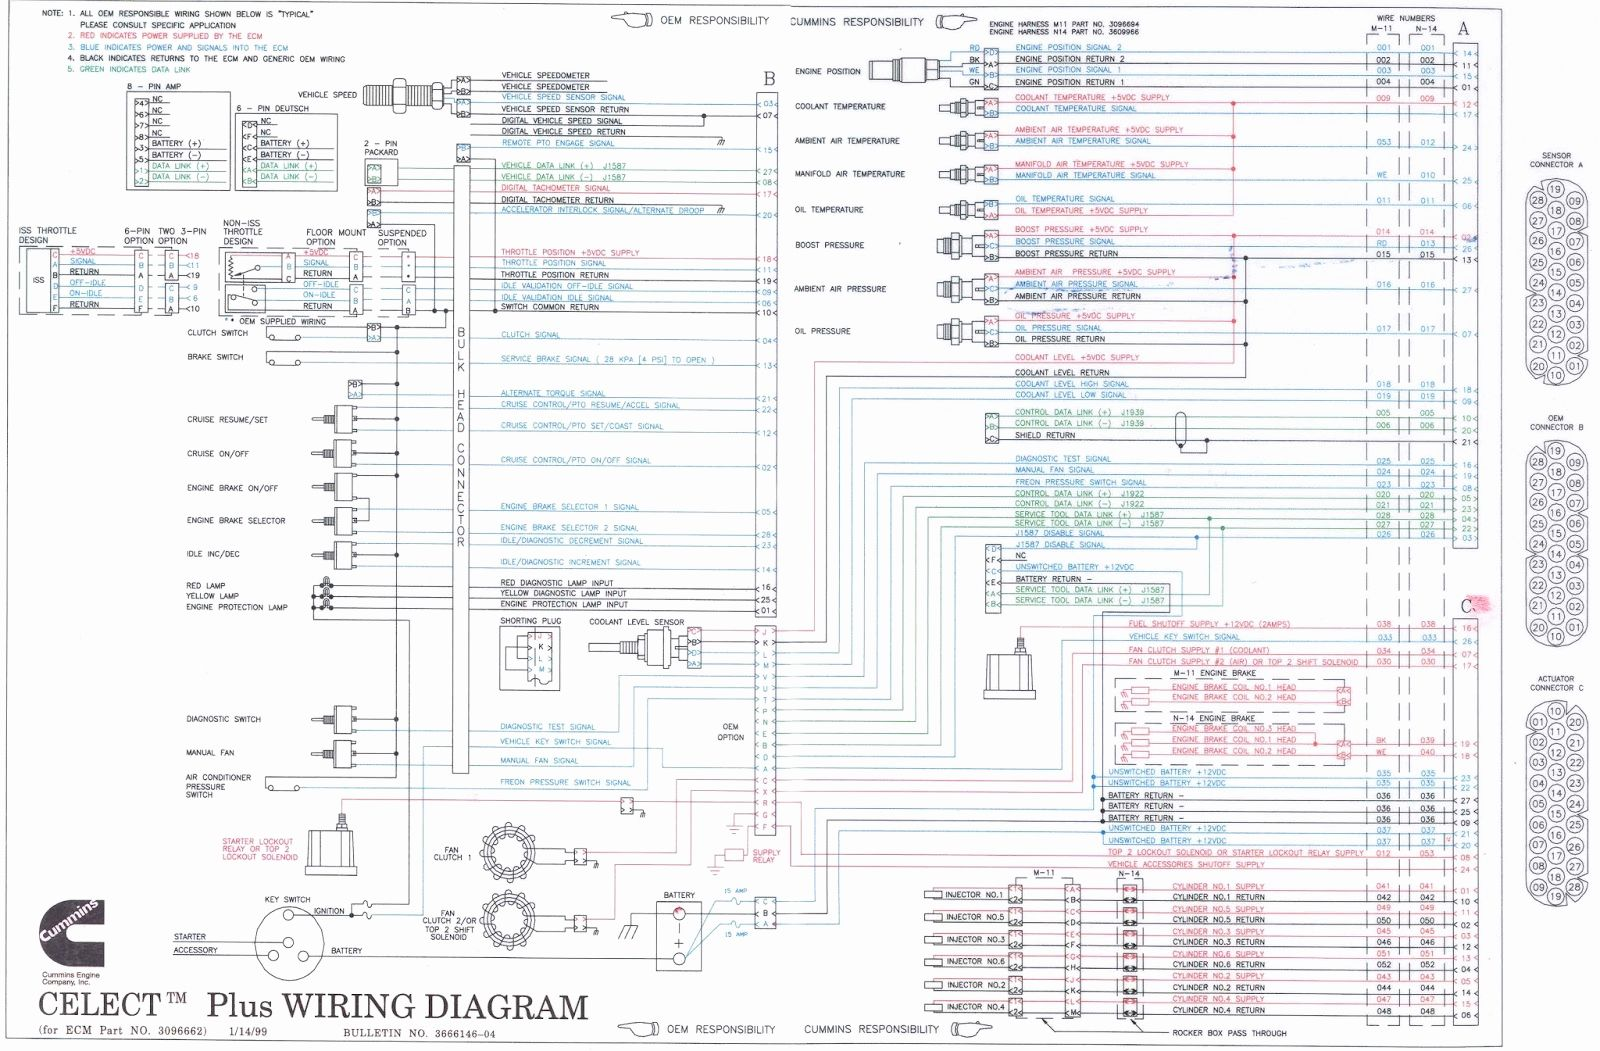 Pin on Celect M Celect Plus Wiring Diagram on ecu wiring diagram, pcm wiring diagram, ism wiring diagram, ecm wiring diagram, isx wiring diagram, isb wiring diagram, isl wiring diagram, interactive wiring diagram,